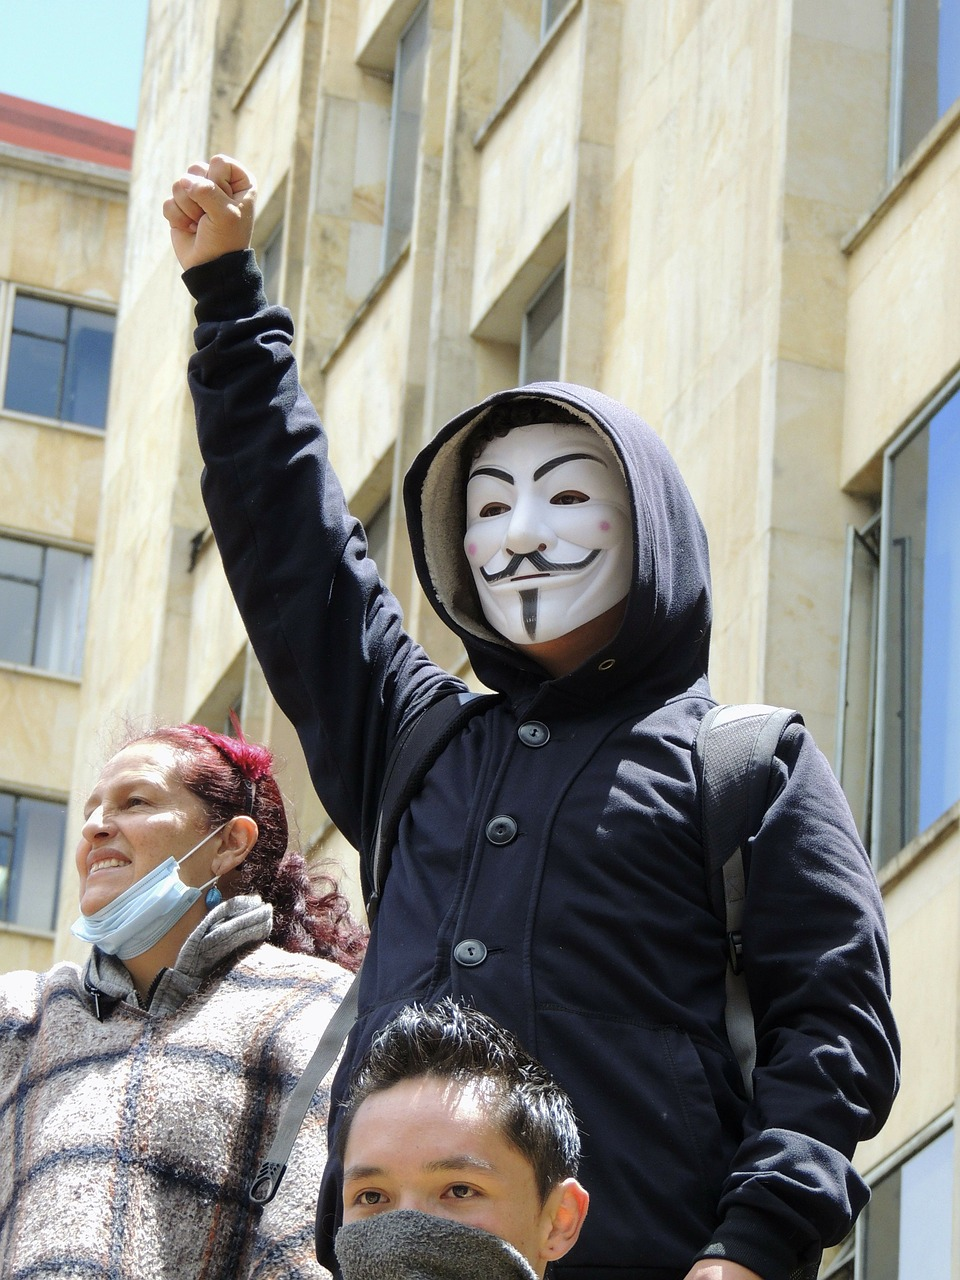 anonymous,mask,bogotá,protest,free pictures, free photos, free images, royalty free, free illustrations, public domain